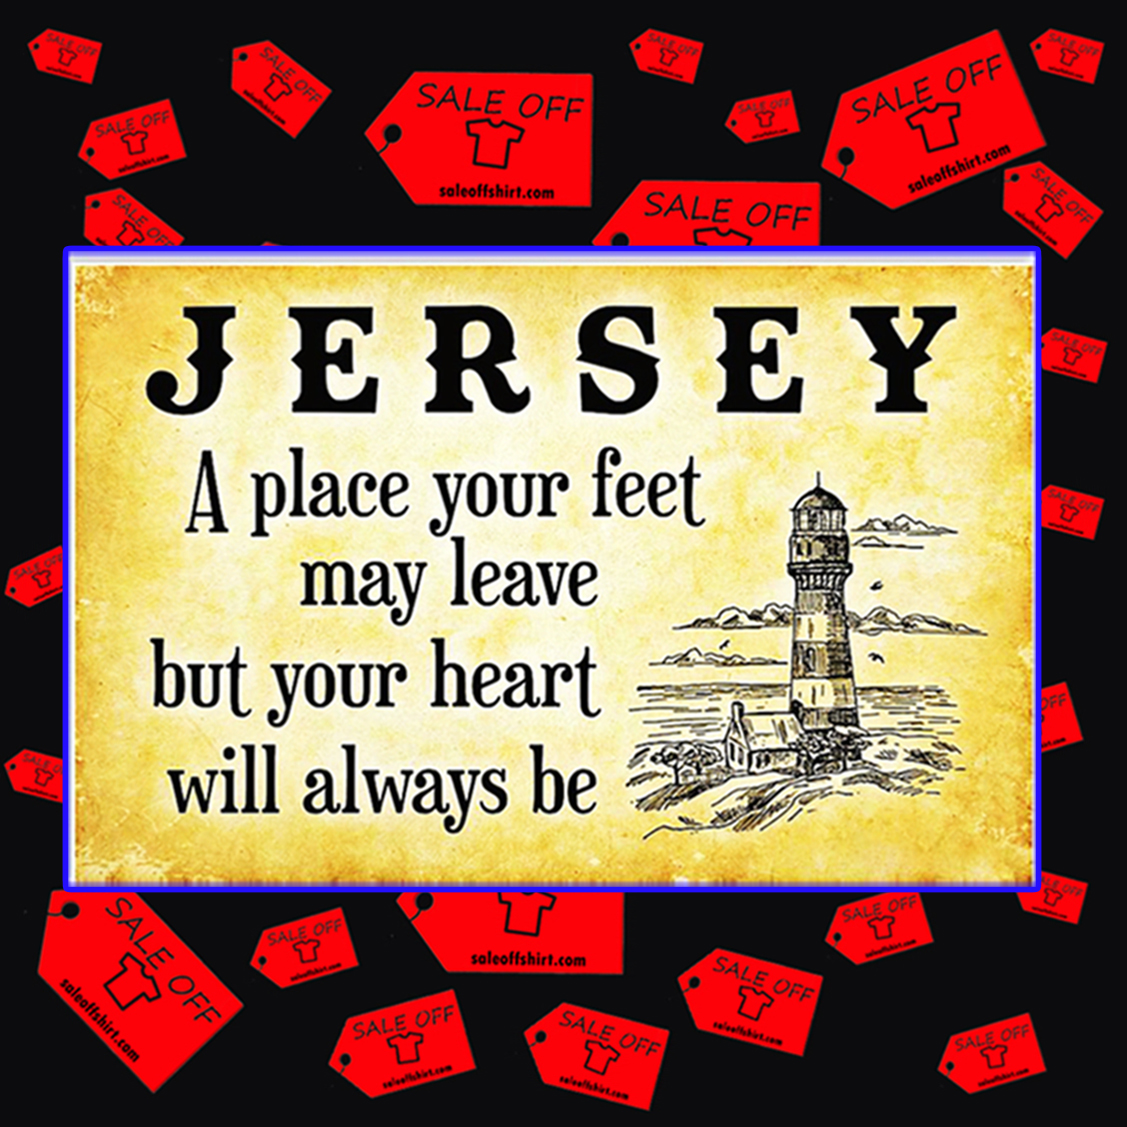 Jersey a place your feet may leave but your heart will always be poster 36x24